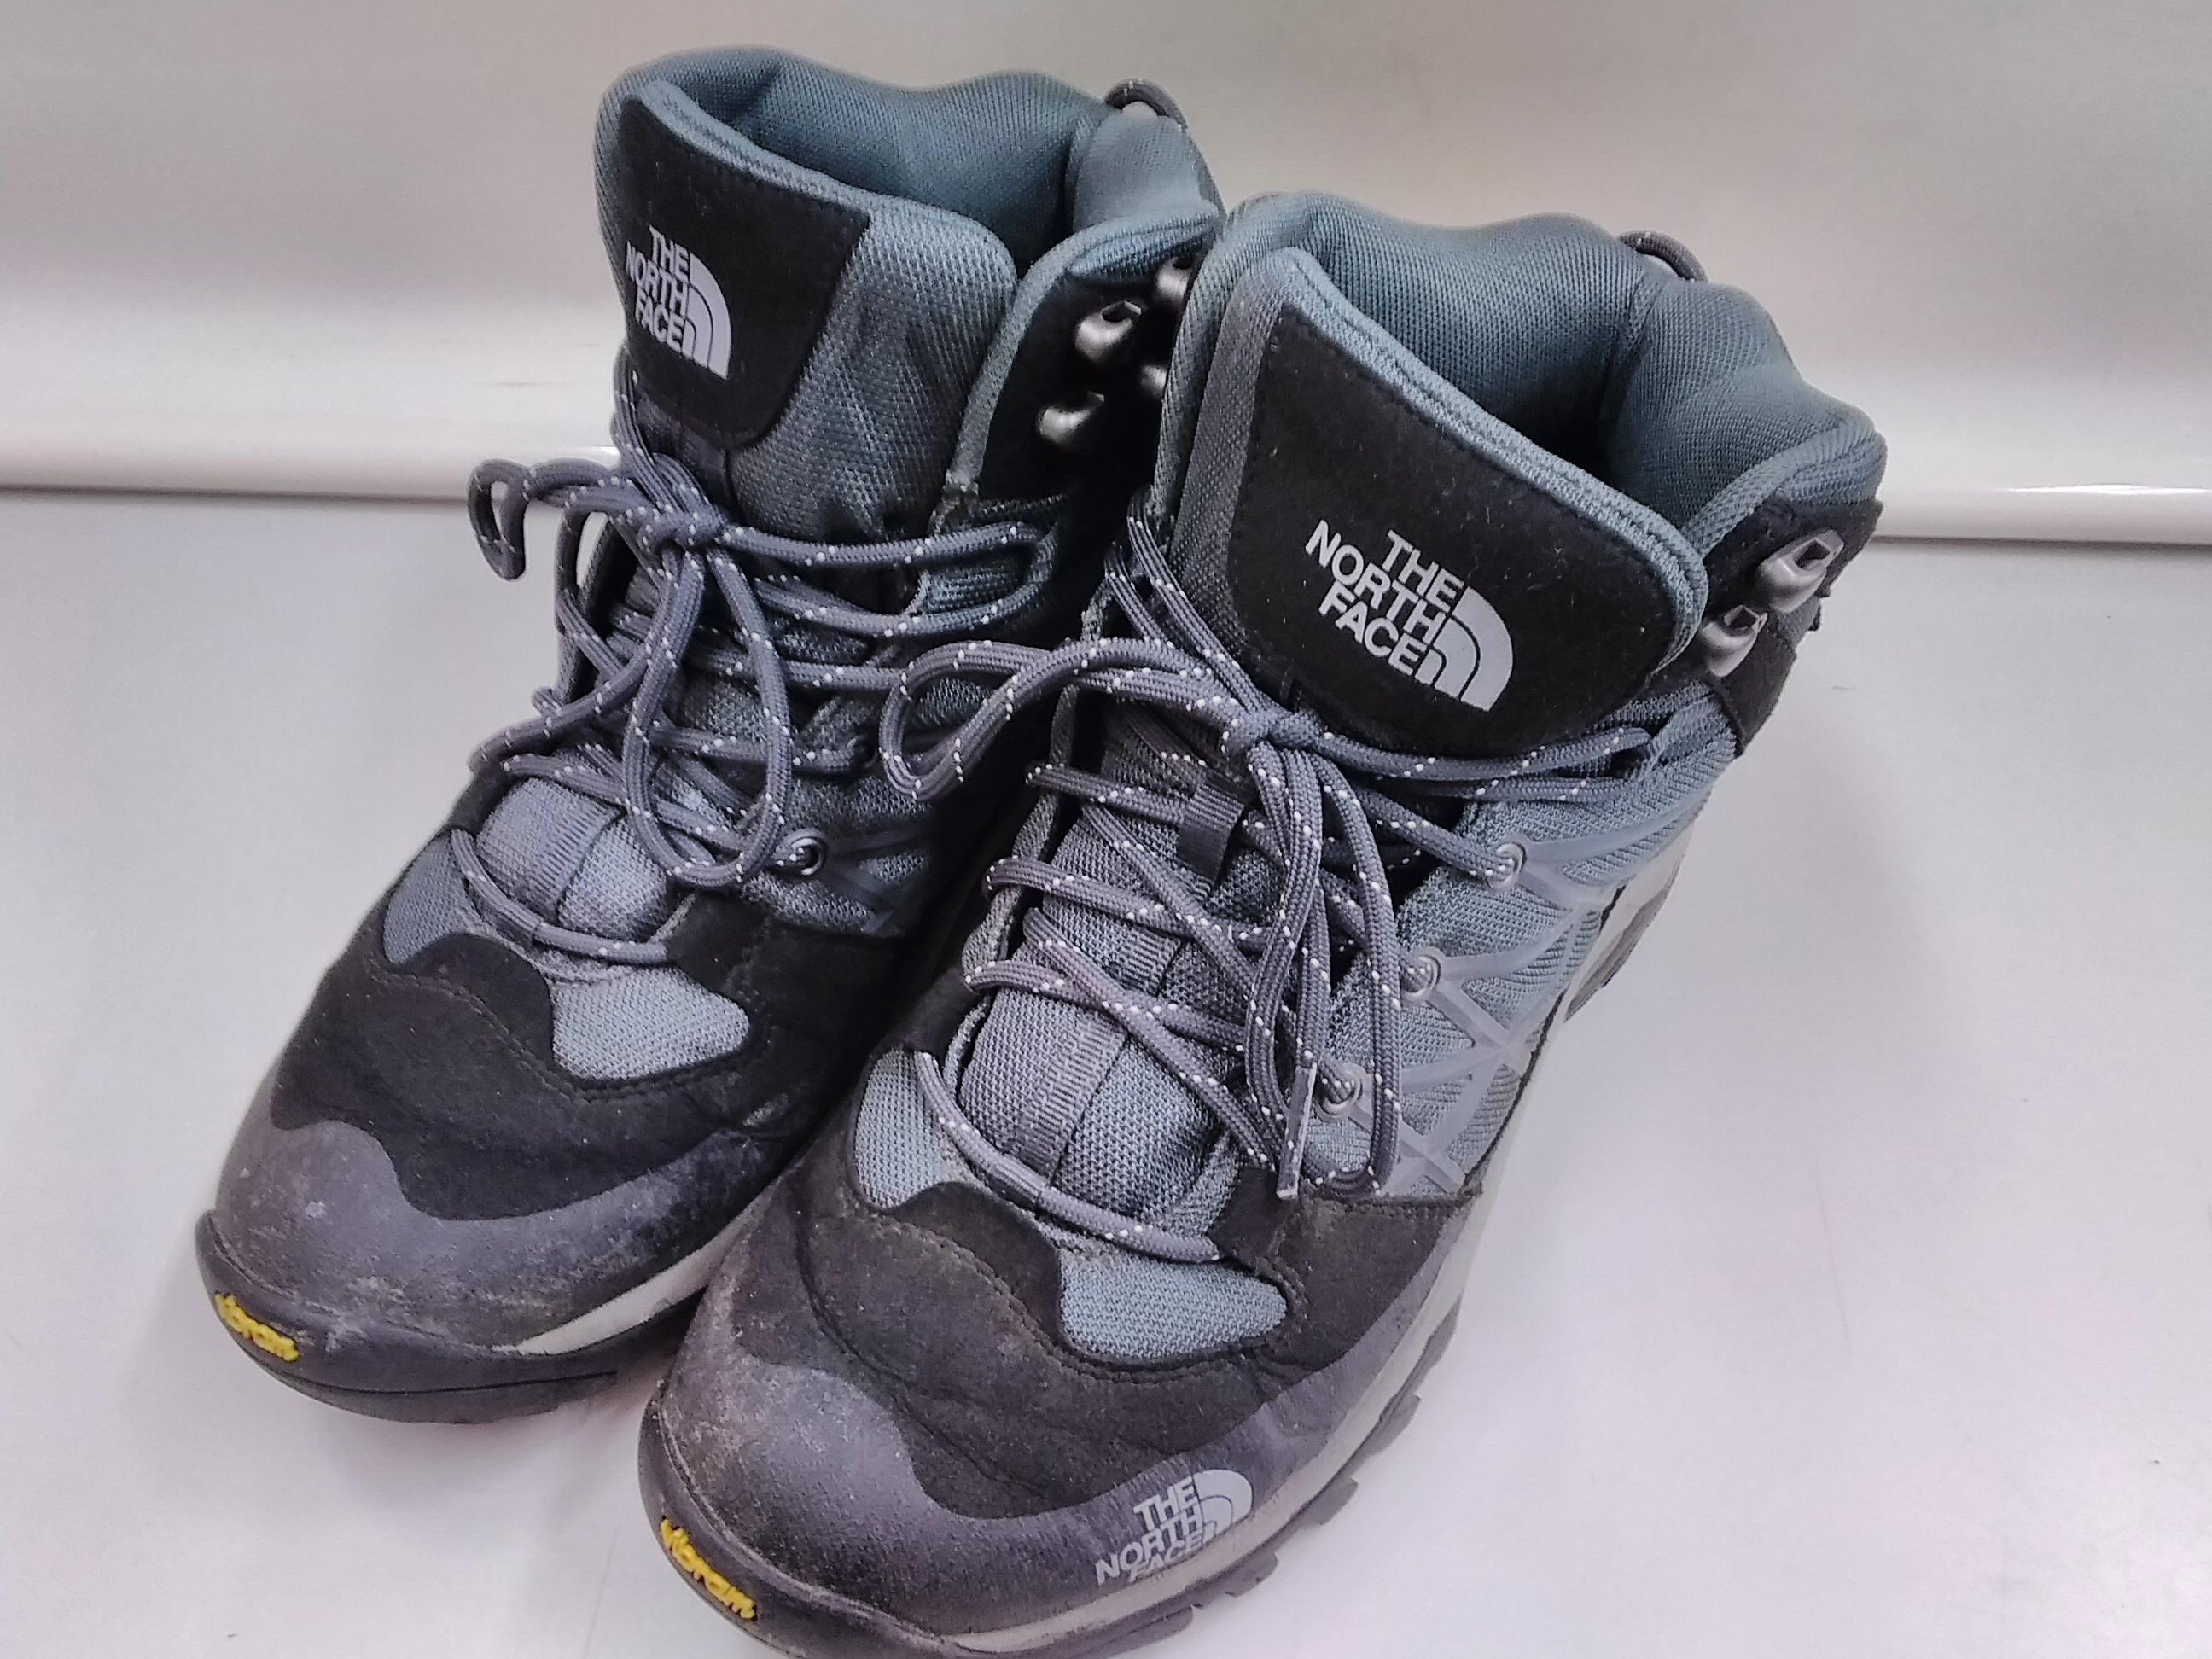 THE NORTH FACE STORM MID WP THE NORTH FACE